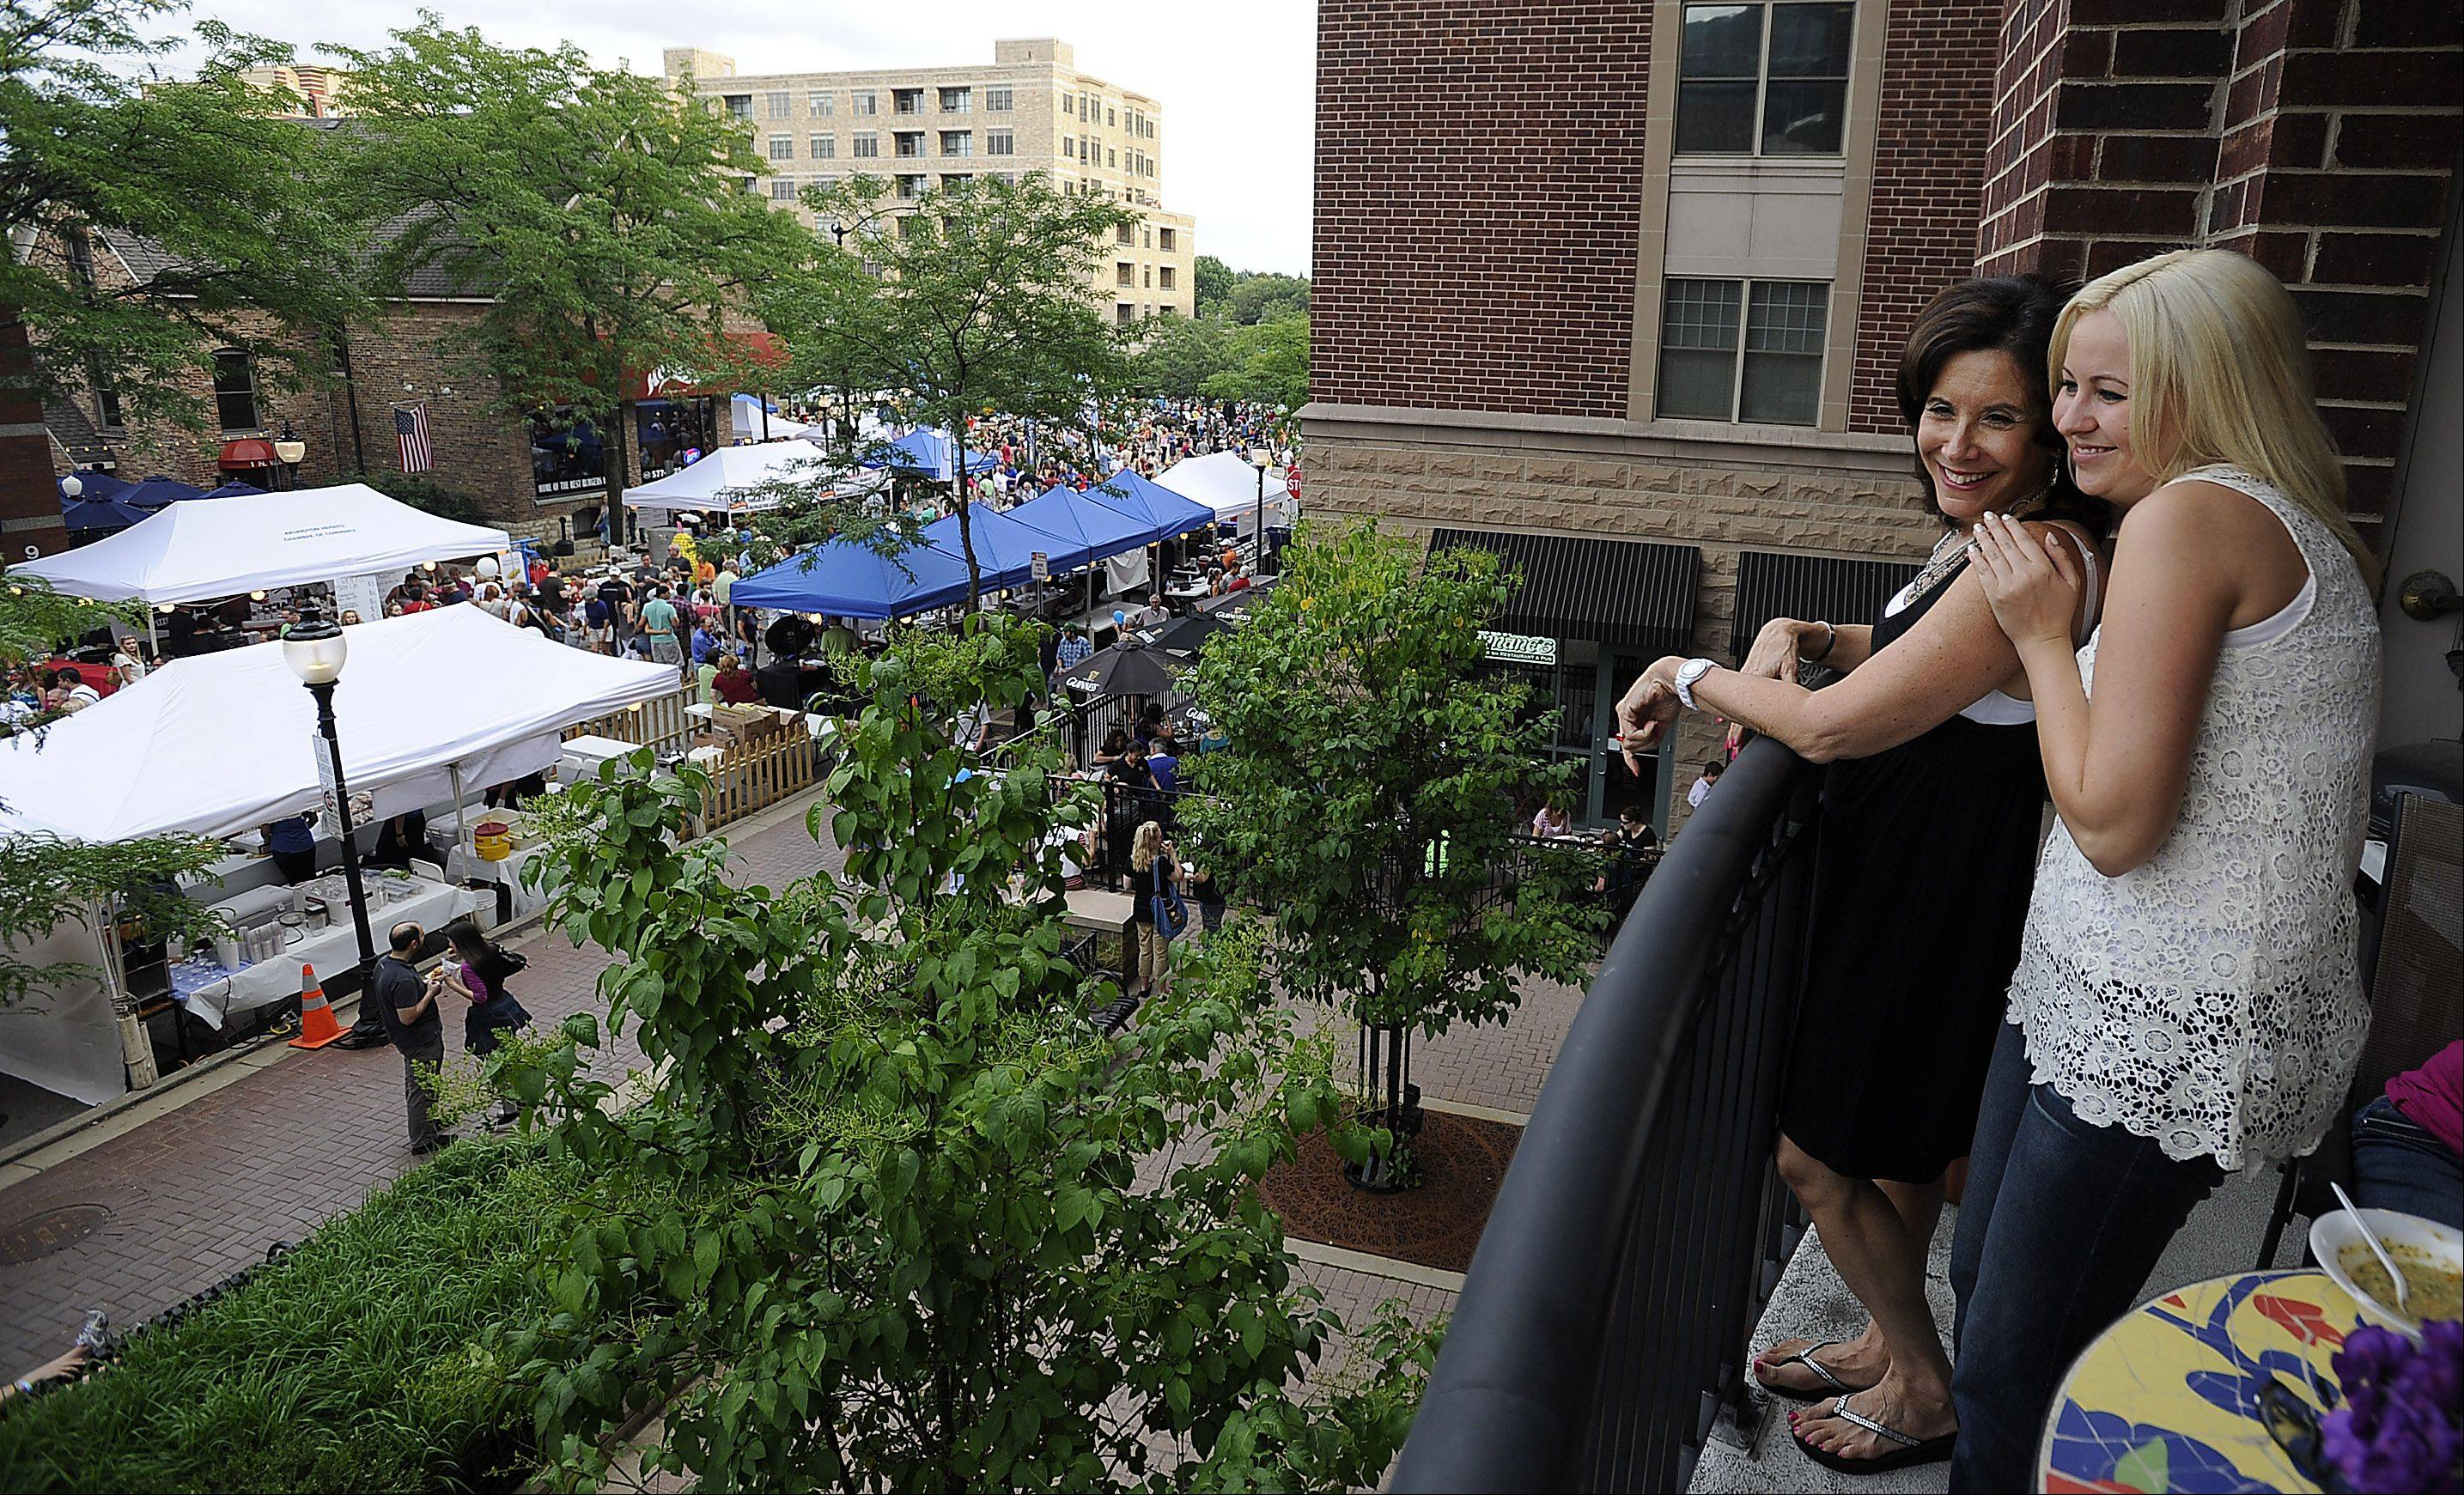 Mark Welsh/mwelsh@dailyherald.com Hundreds of people attend the Mane Event in downtown Arlington Heights on Friday including Tammy Green of Grayslake (front) and her friend Minda Smith of Vernon Hills who take in the sights from high above.